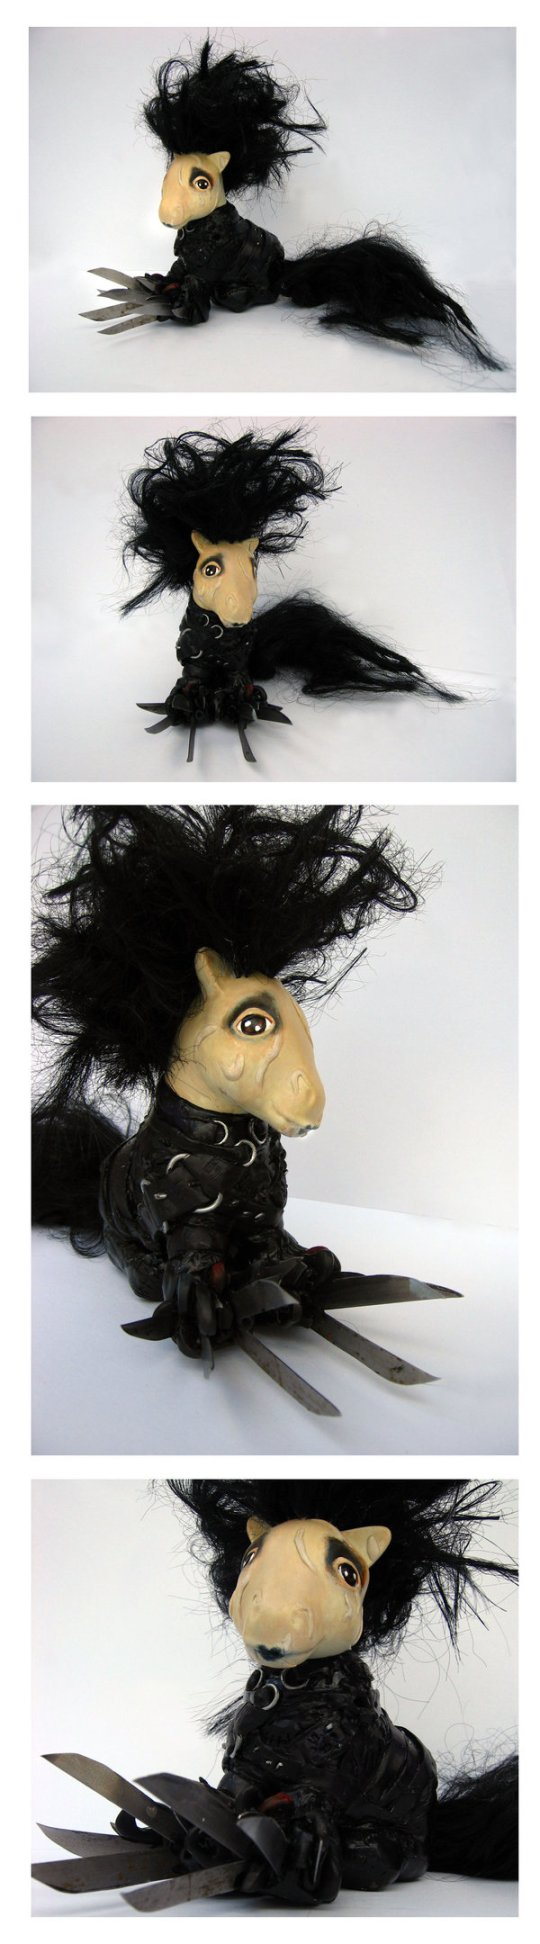 my_little_edward_scissorhands_by_spippo1